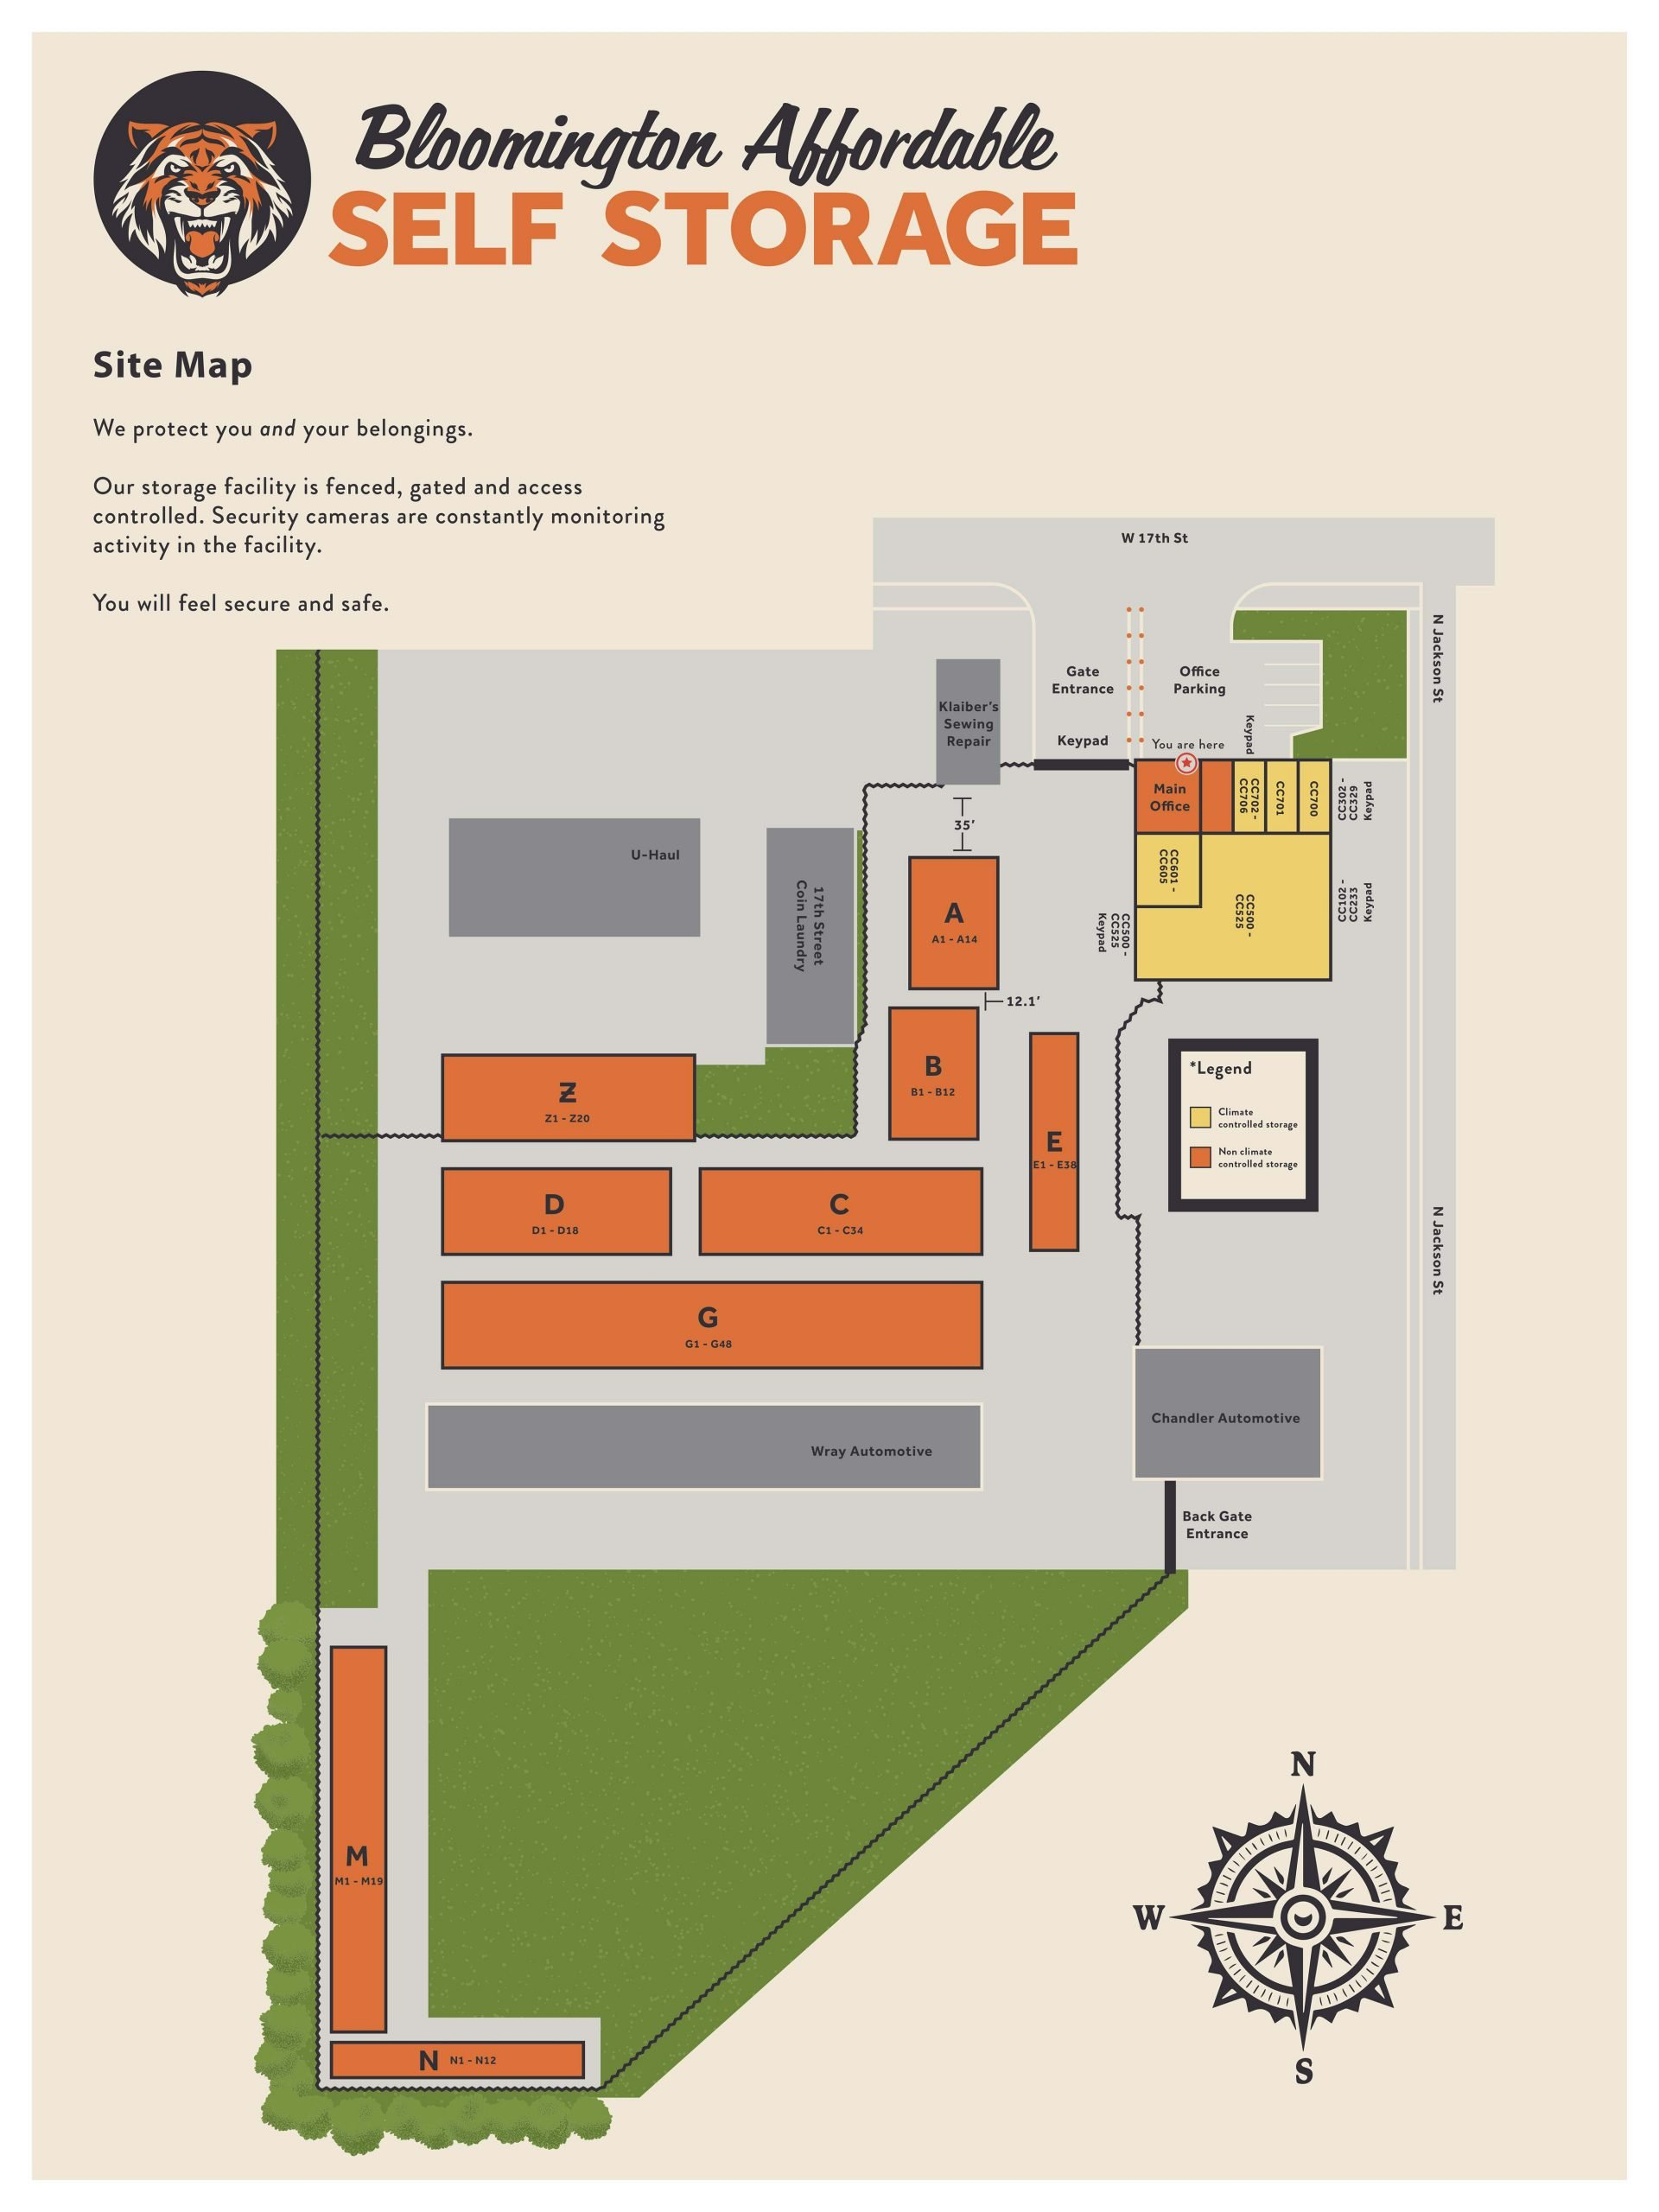 Sitemap for Bloomington Affordable Self Storage - Jackson Street Location